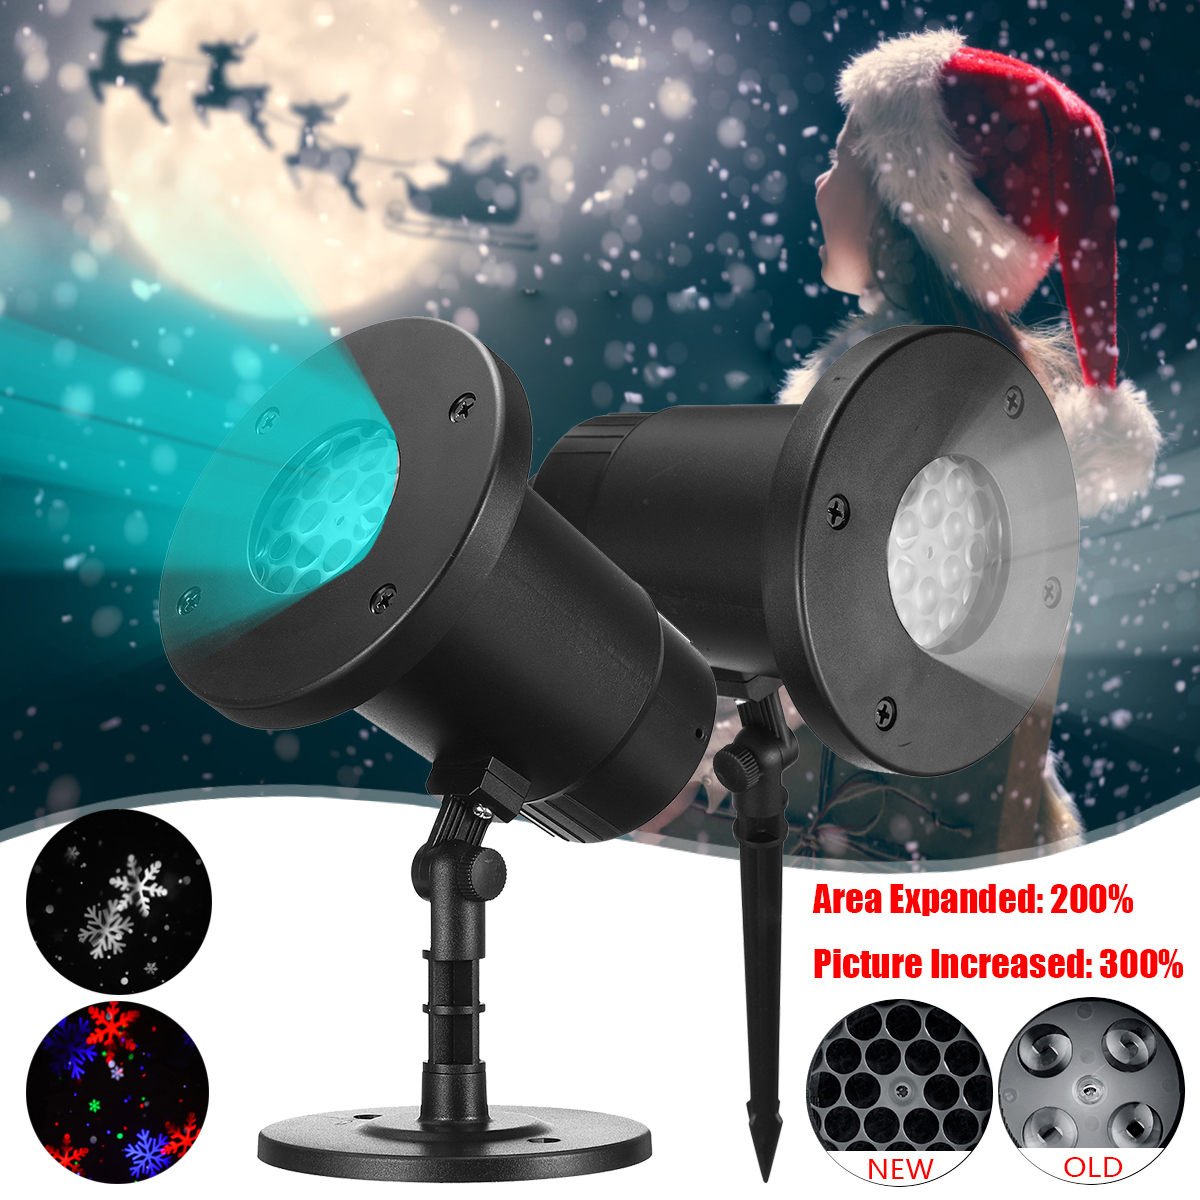 18 Holes Projector Lamp Outdoor Landscape Light Christmas Halloween Party Garden Decoration Waterproof Snowflakes Holiday Lamp